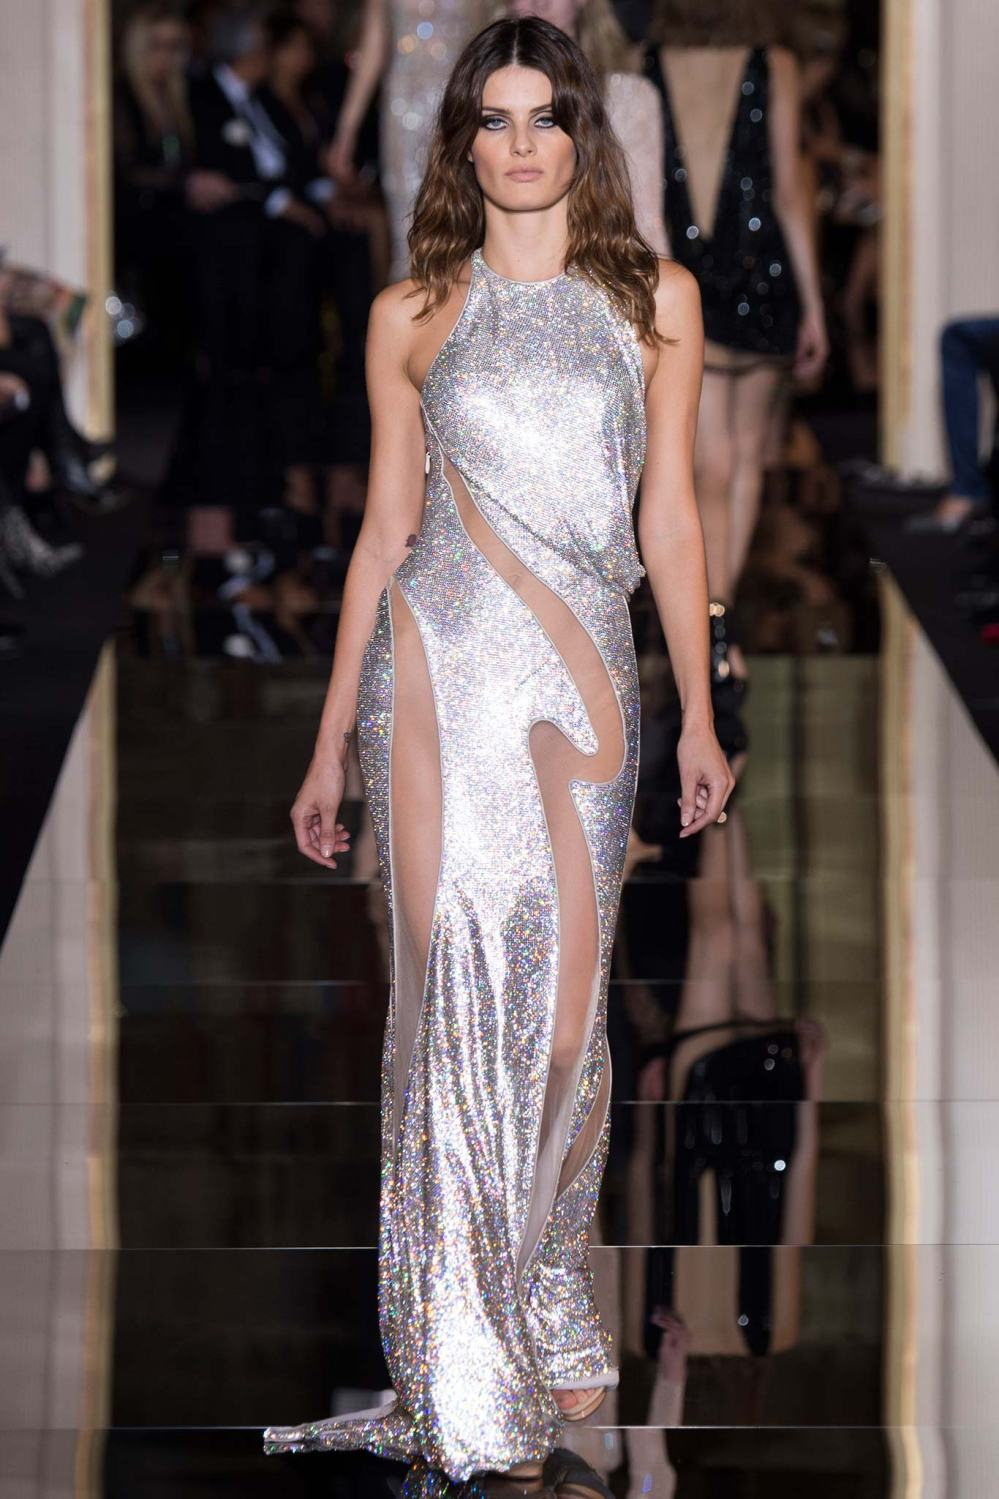 Atelier Versace, Spring/Summer 2015 Look 30 Model : Isabeli Fontana Photo: Kim Weston Arnold/Indigitalimages.com